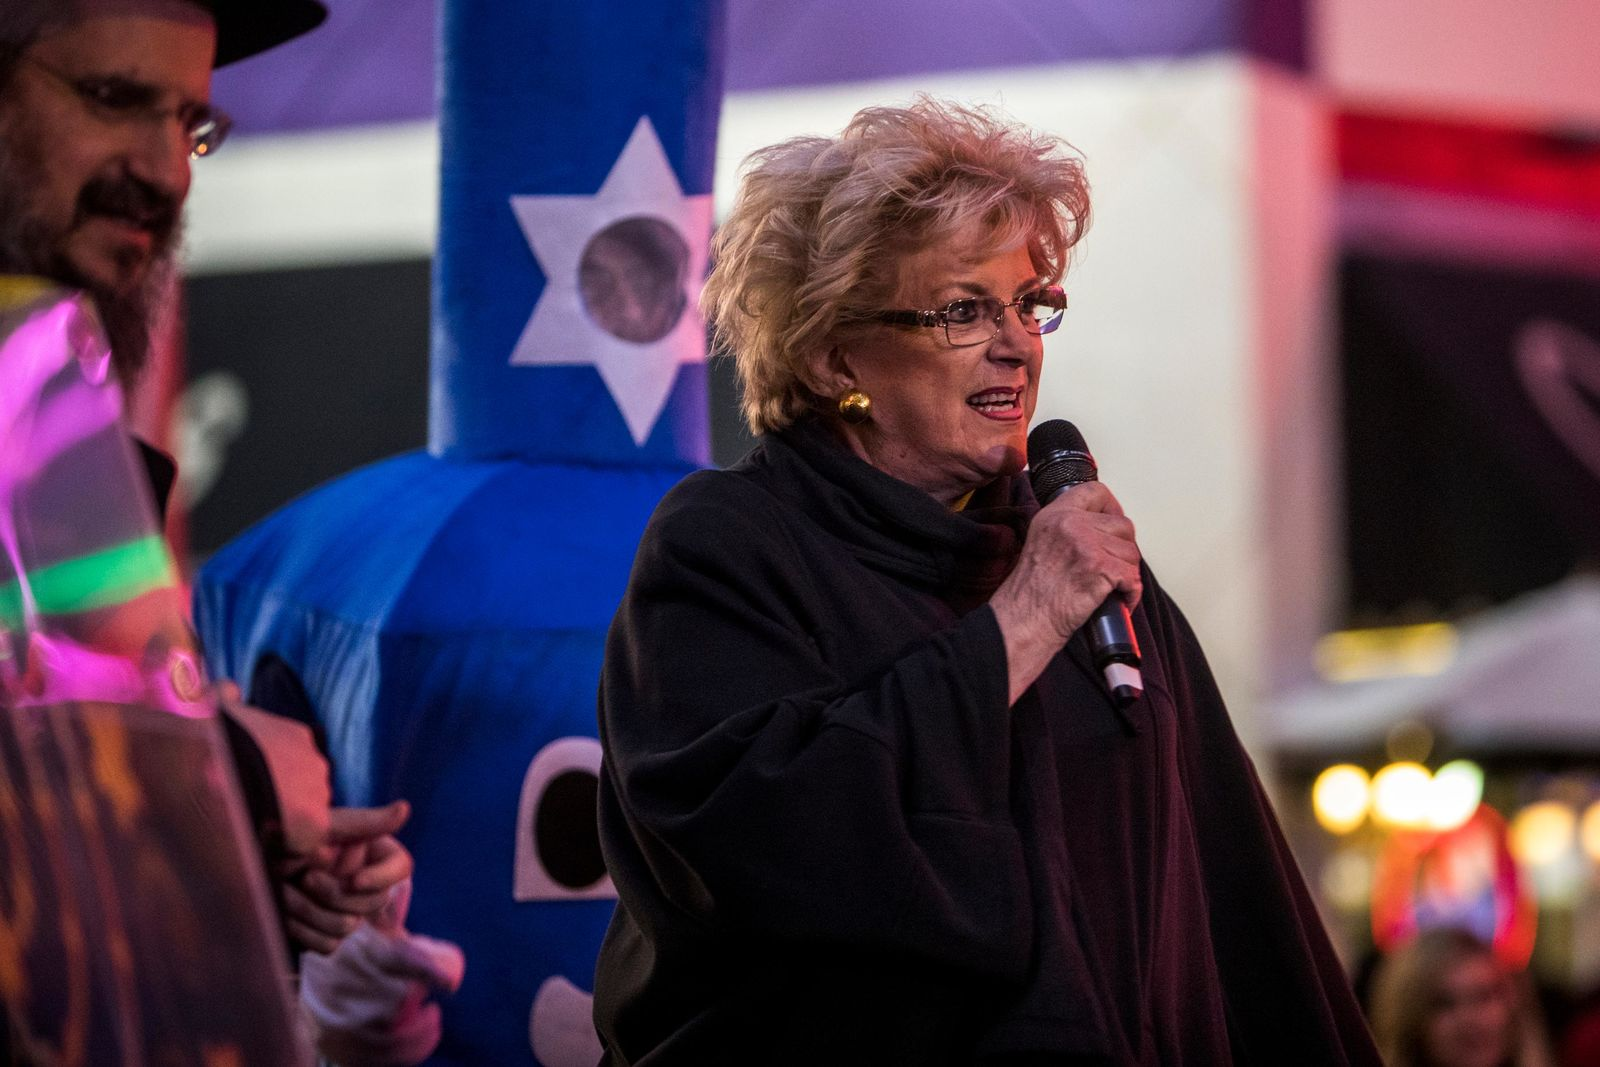 Las Vegas Mayor Carolyn Goodman speaks before the lighting of the Grand Menorah in downtown Las Vegas on Sunday, Dec. 2. The ceremony featured a 20-foot Grand Menorah, with ceremonies led by Rabbi Shea Harlig from Chabad of Southern Nevada. CREDIT: Joe Buglewicz/Las Vegas News Bureau